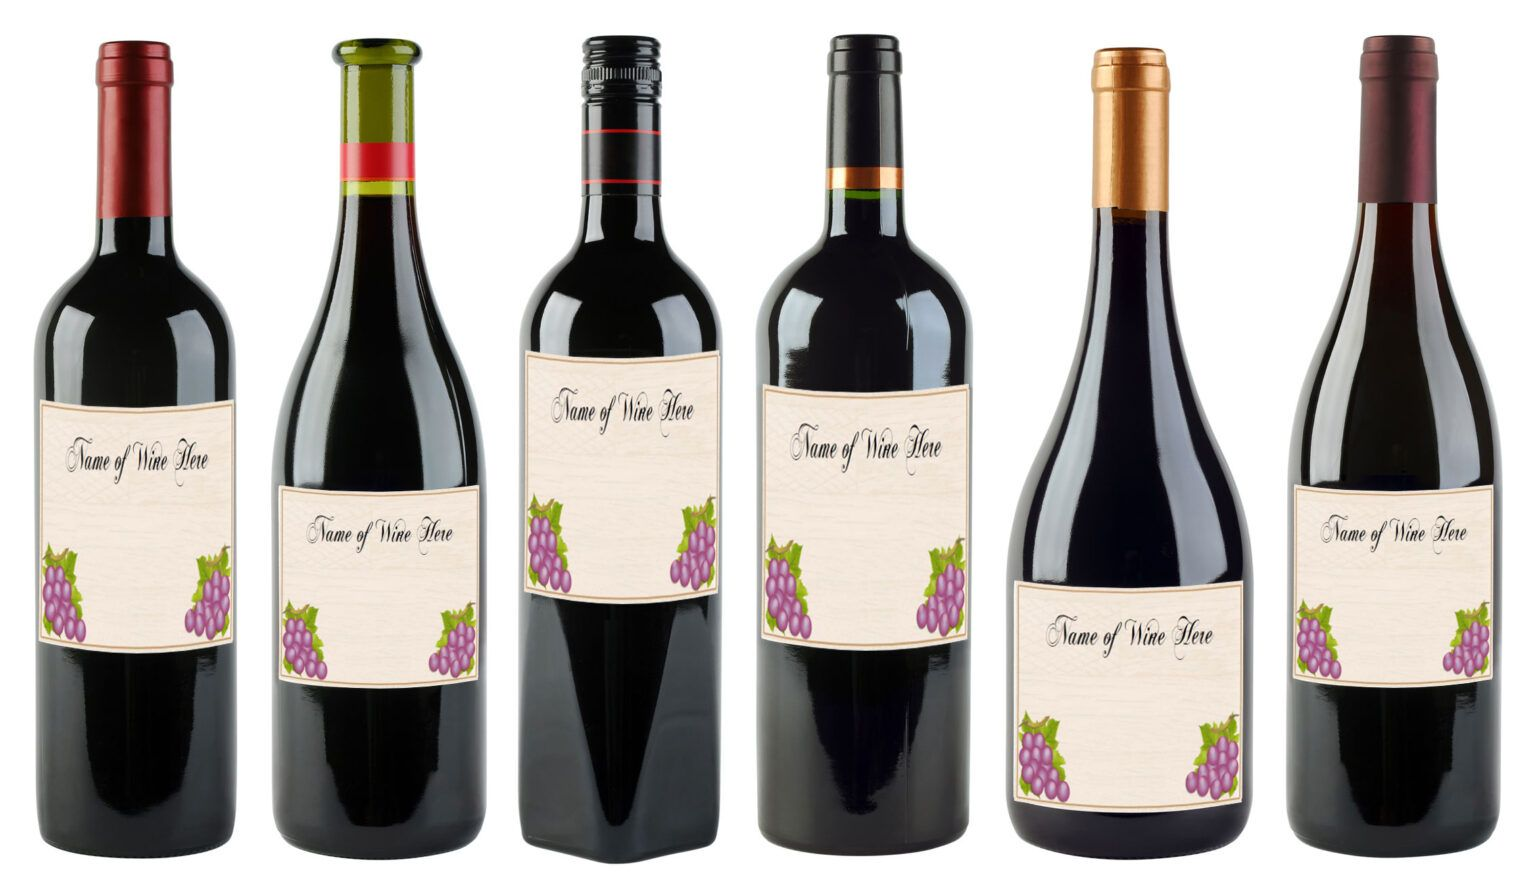 6 Free Printable Wine Labels You Can Customize Lovetoknow Within Blank Wine Label Templ Free Wine Label Template Wine Label Printable Free Wine Bottle Labels